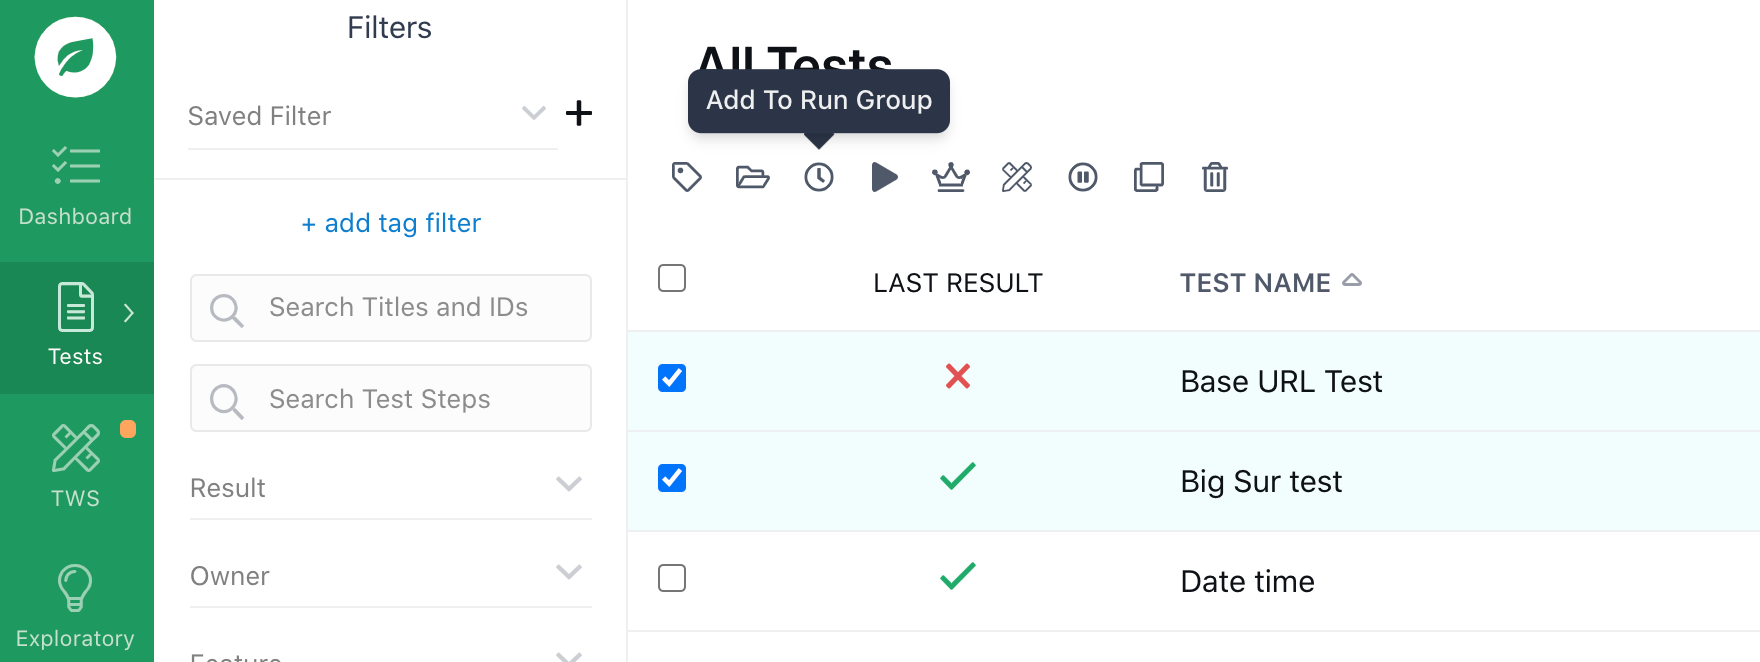 Adding tests to a run group.